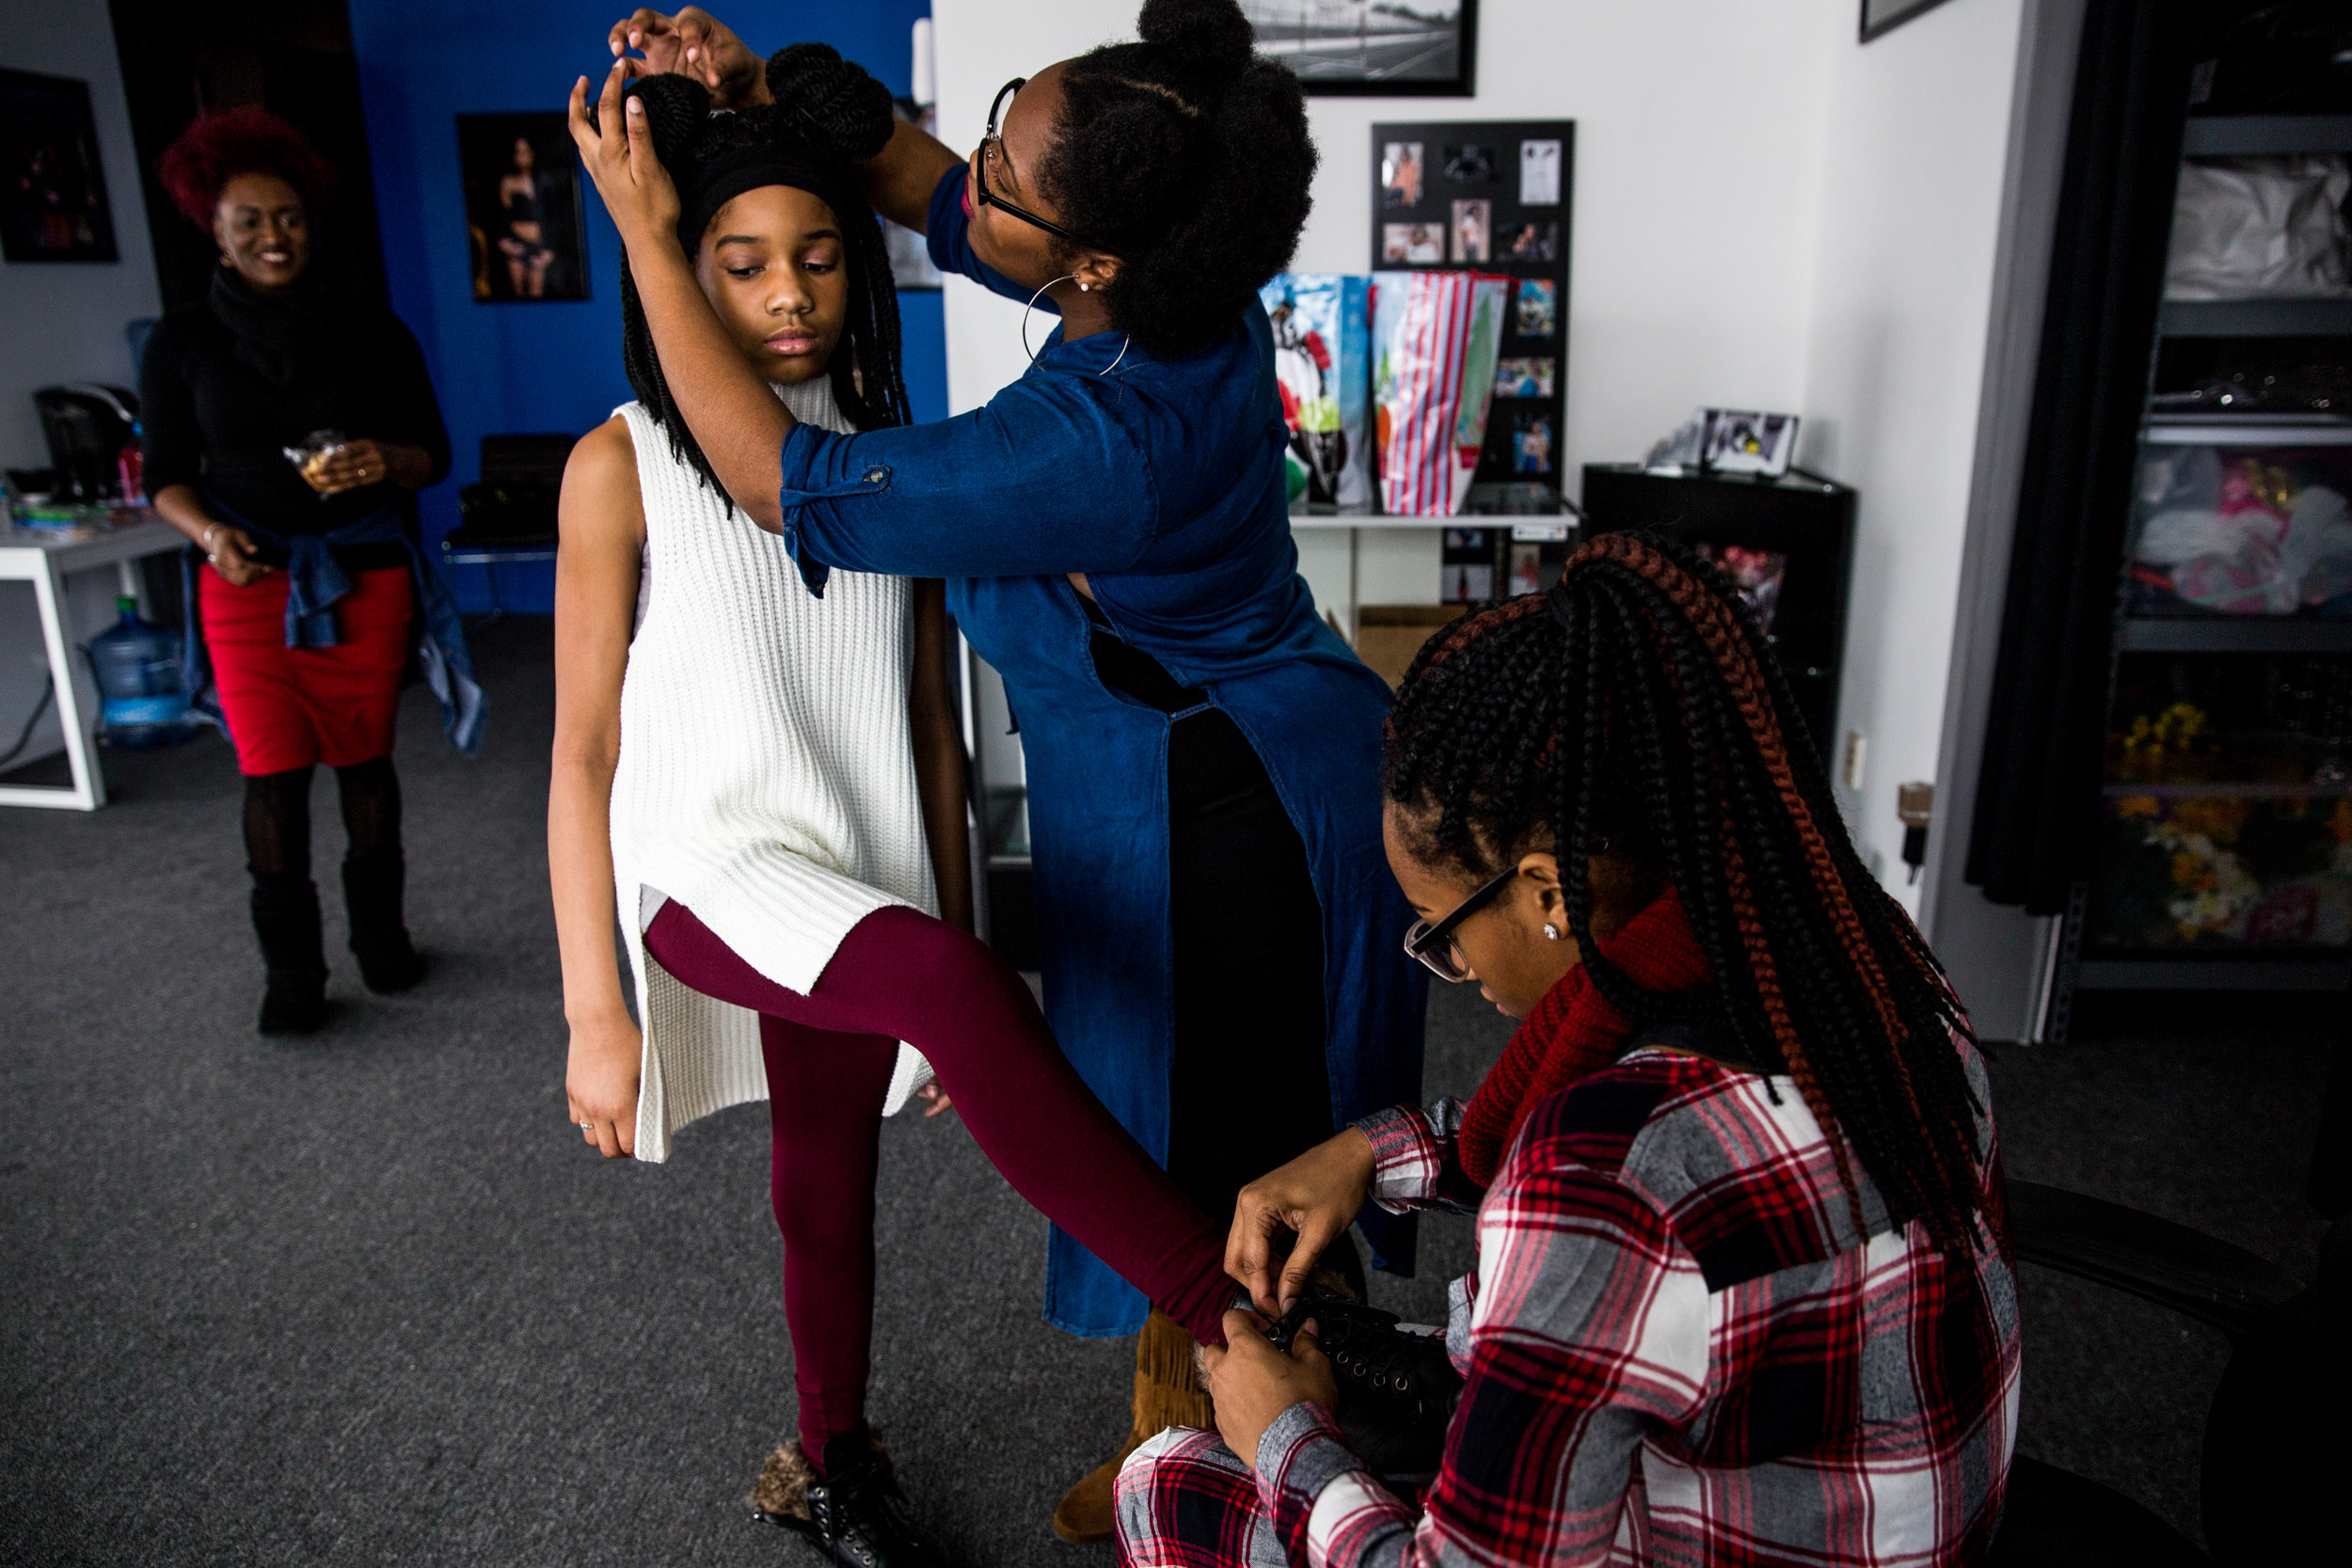 Tracy Palmer, of Flint, watches as her daughters Zahria Palmer, 17, and Myracle Palmer, 16, right, help Kaya Grair prepare for a professional photoshoot with photographer Donnell Carr on Saturday, Dec. 17, 2016 in Flint. Tracy Palmer, owner of Trendsetters Production, decided to help make Grair's wish to be a model come true.